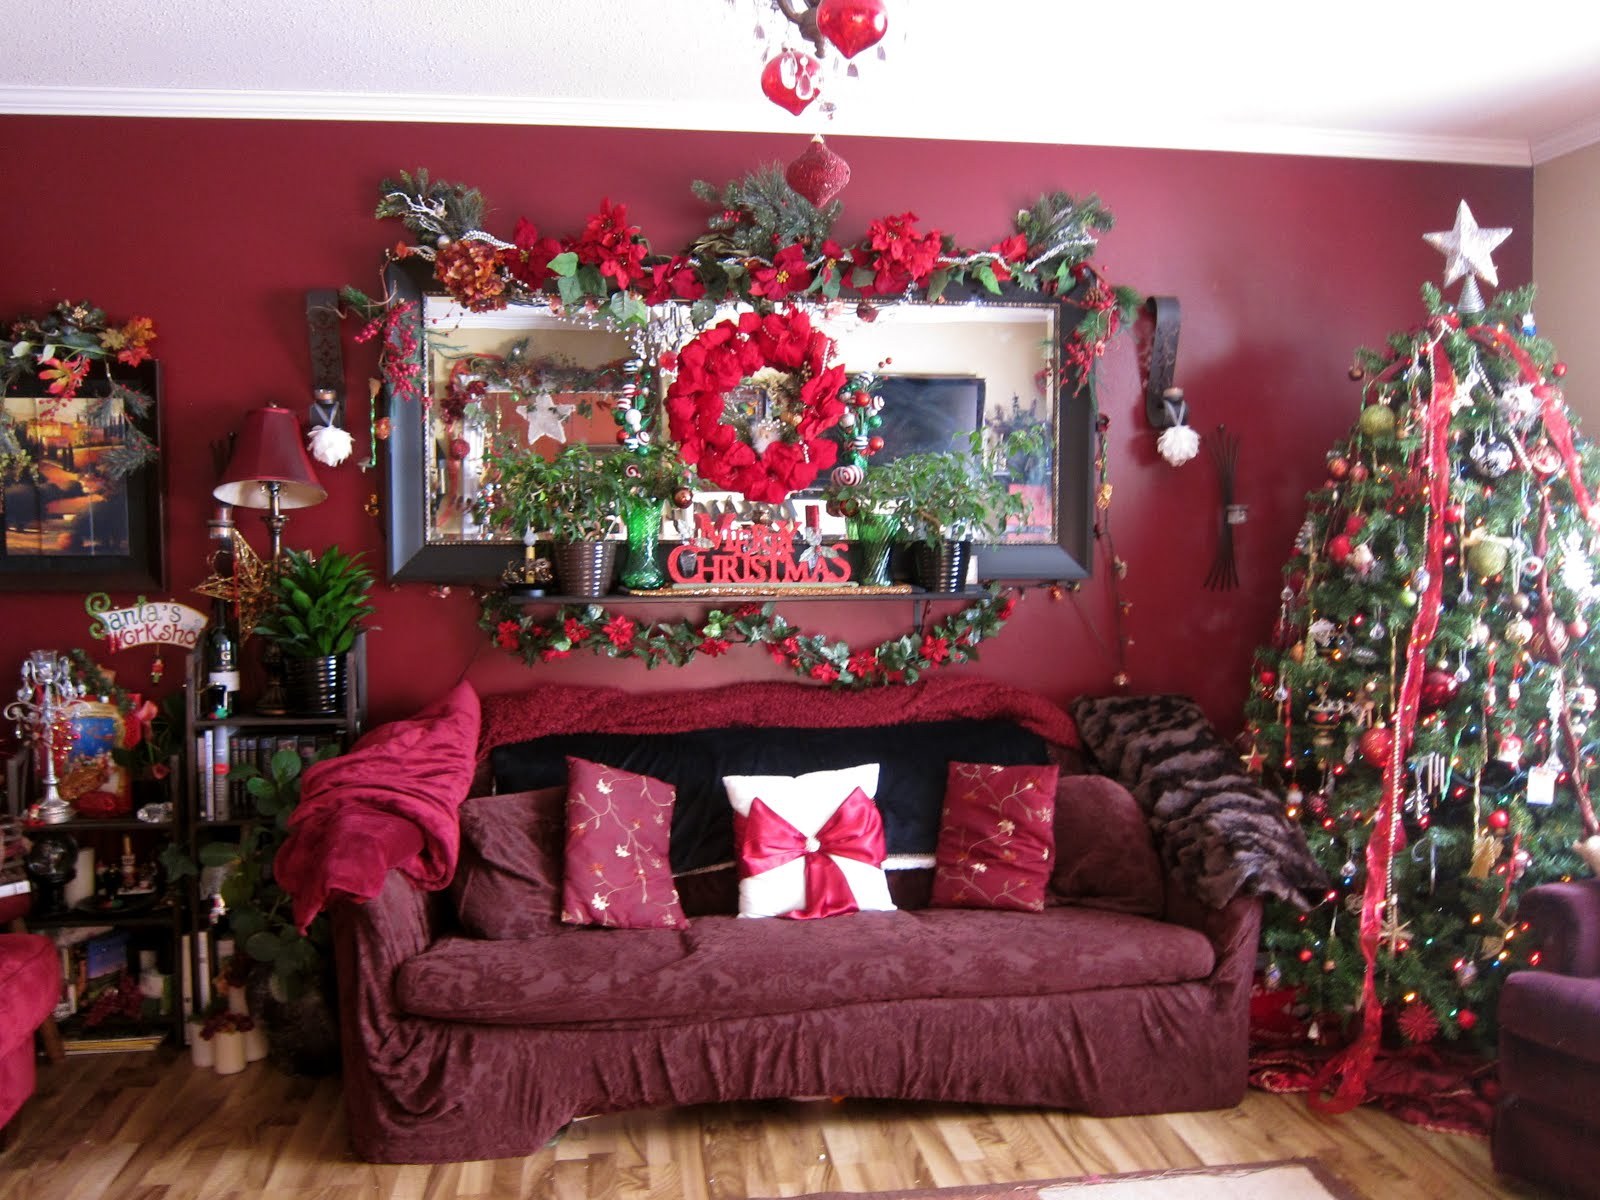 Our Christmas Living Room